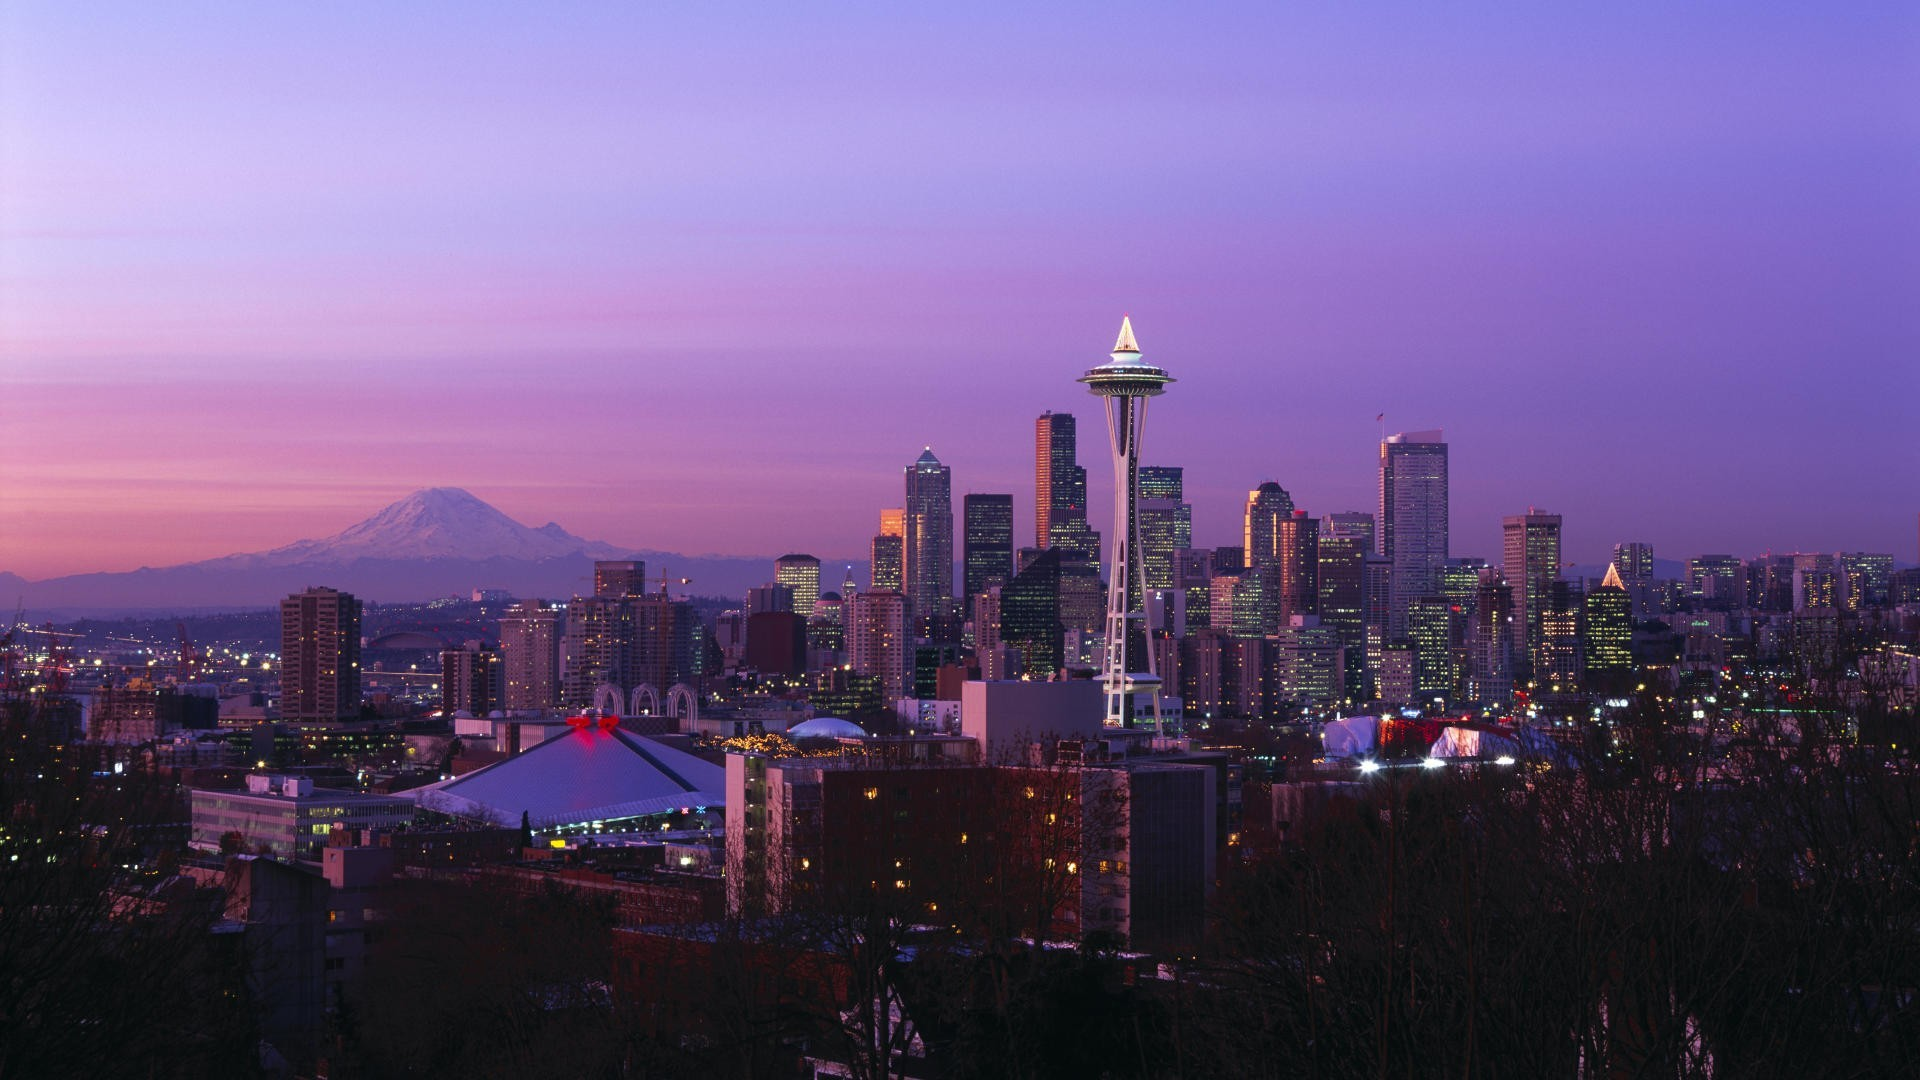 Night Seattle Wallpaper Hd